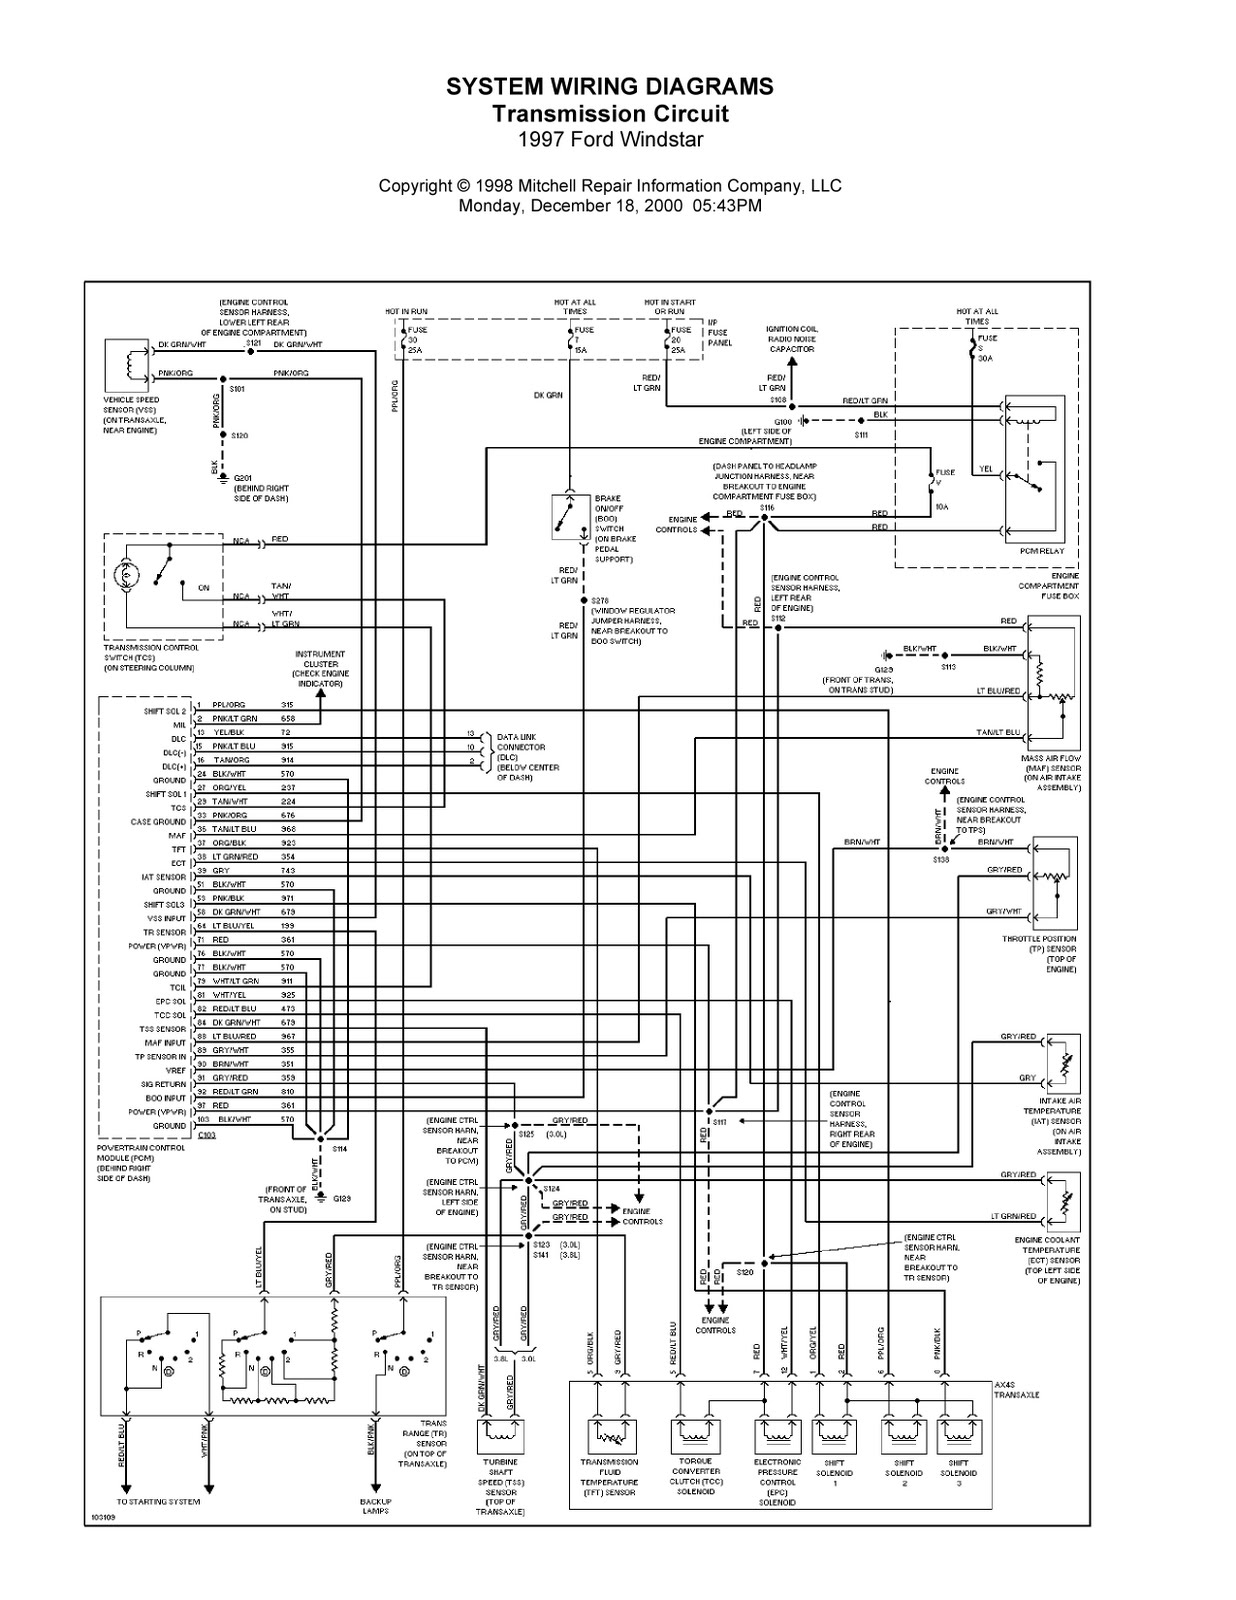 0049 1997 ford windstar complete system wiring diagrams wiring 1999 ford windstar wiring diagram at bayanpartner.co